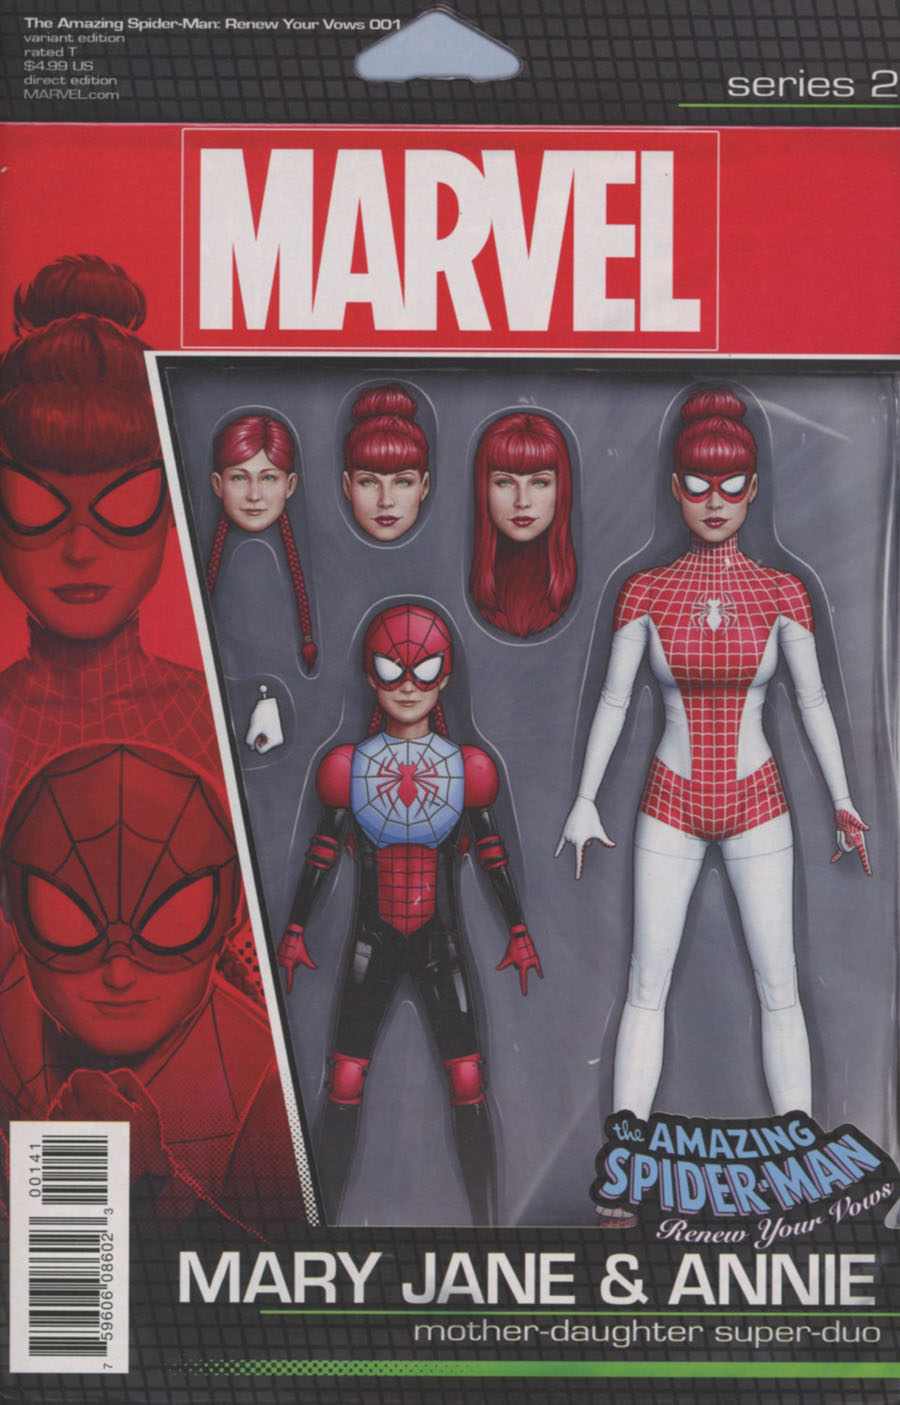 Amazing Spider-Man Renew Your Vows Vol 2 #1 Cover C Variant John Tyler Christopher Mary Jane & Annie Action Figure Cover (Marvel Now Tie-In)